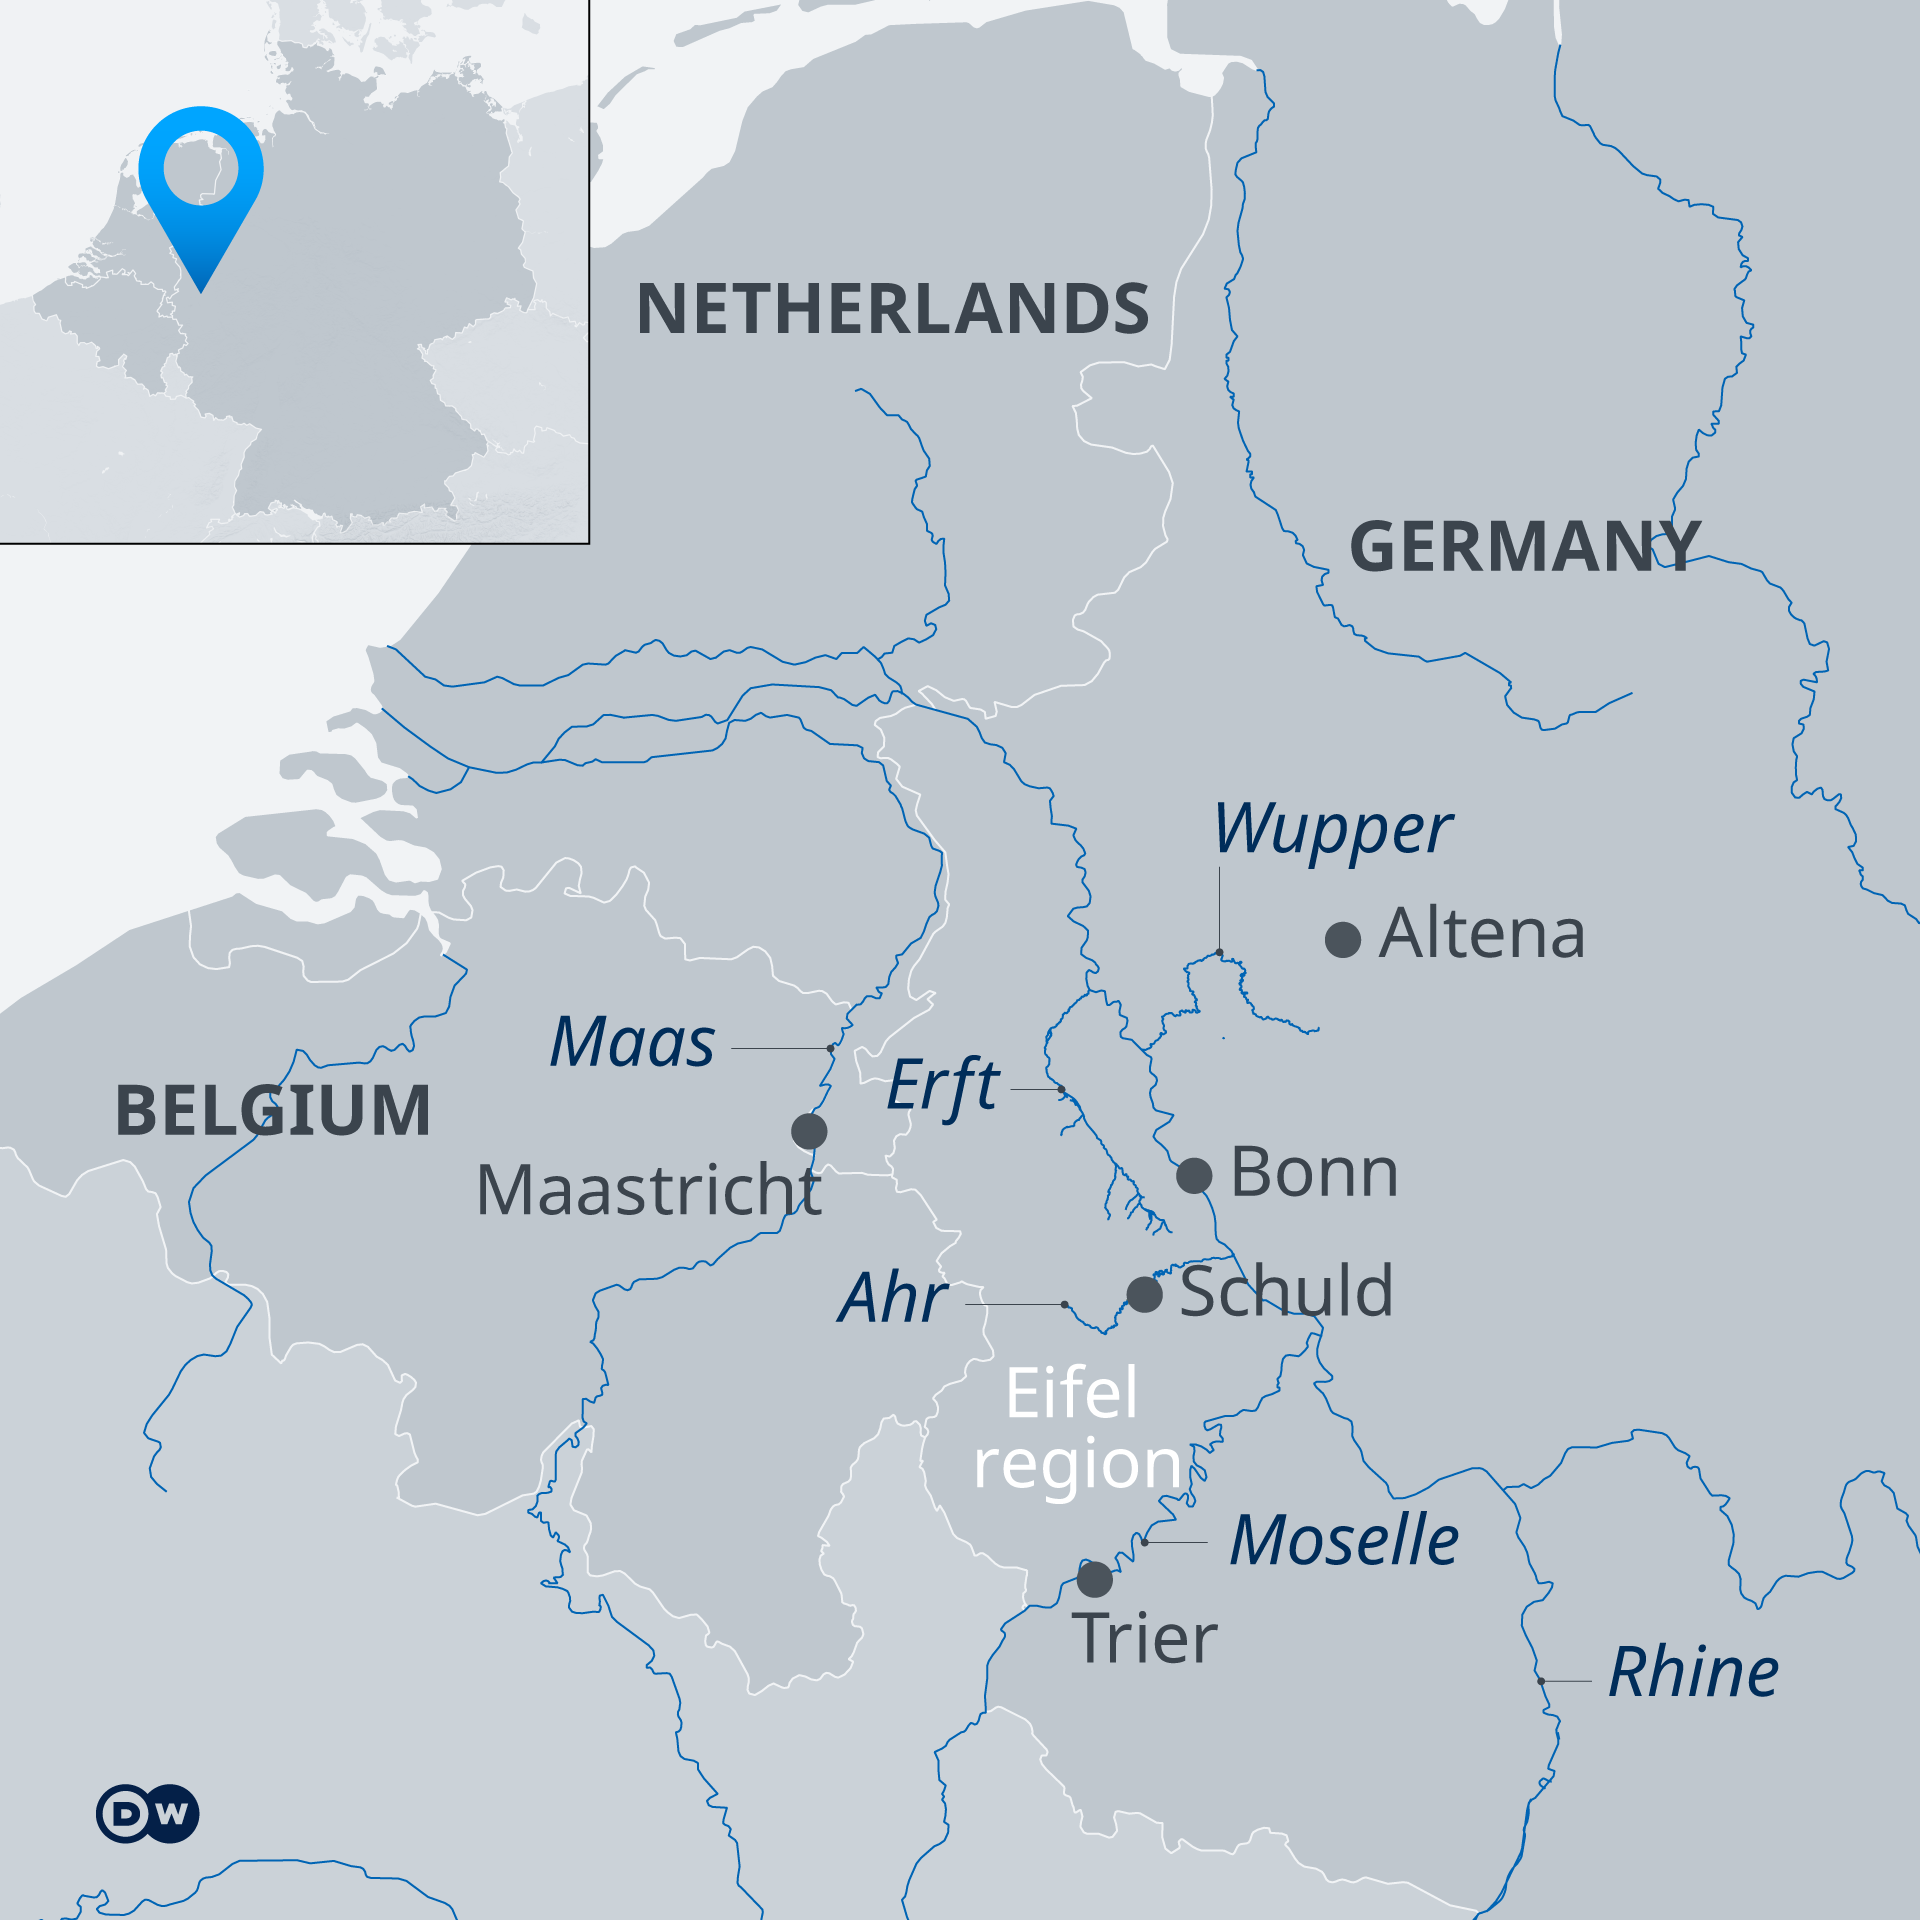 A map showing areas affected by flooding In Belgium, the Netherlands and Germany, including Schuld in the Eifel region